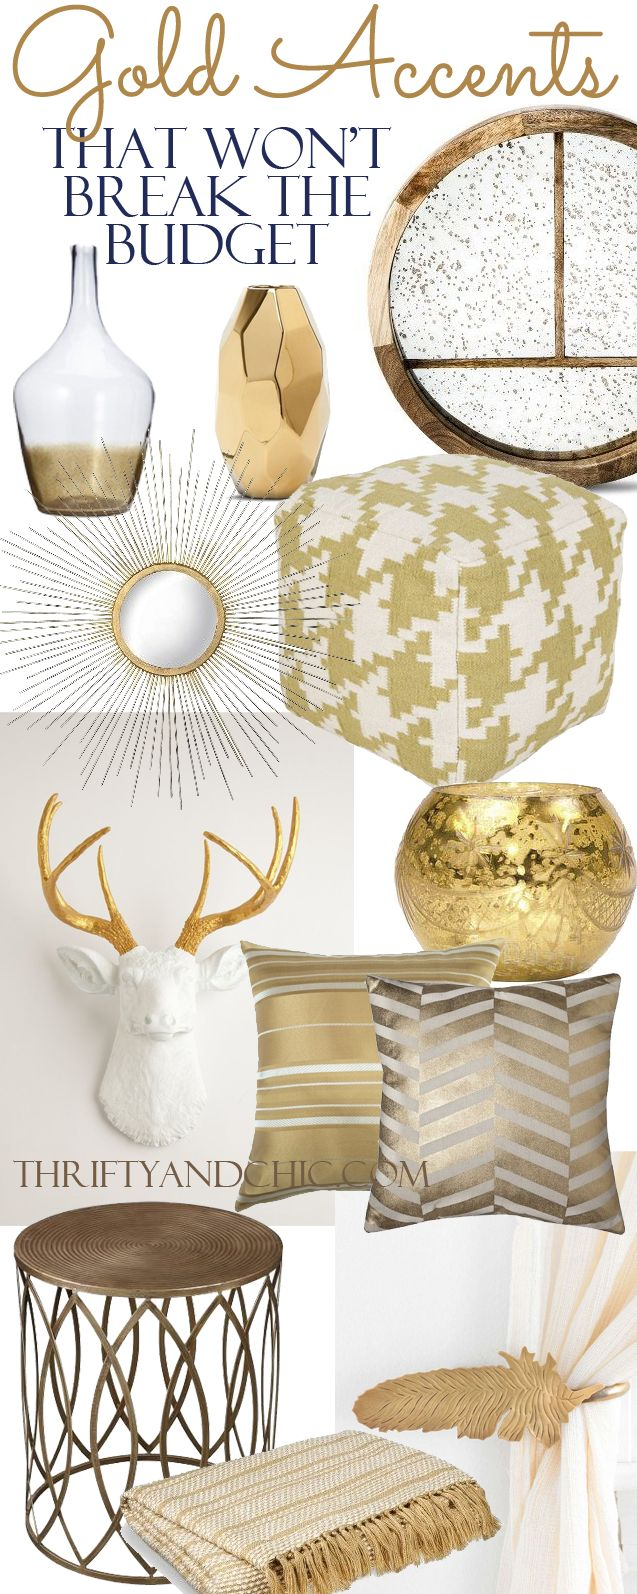 18 gold home decor pieces that wont breat the budget divided up into - Home Room Decor